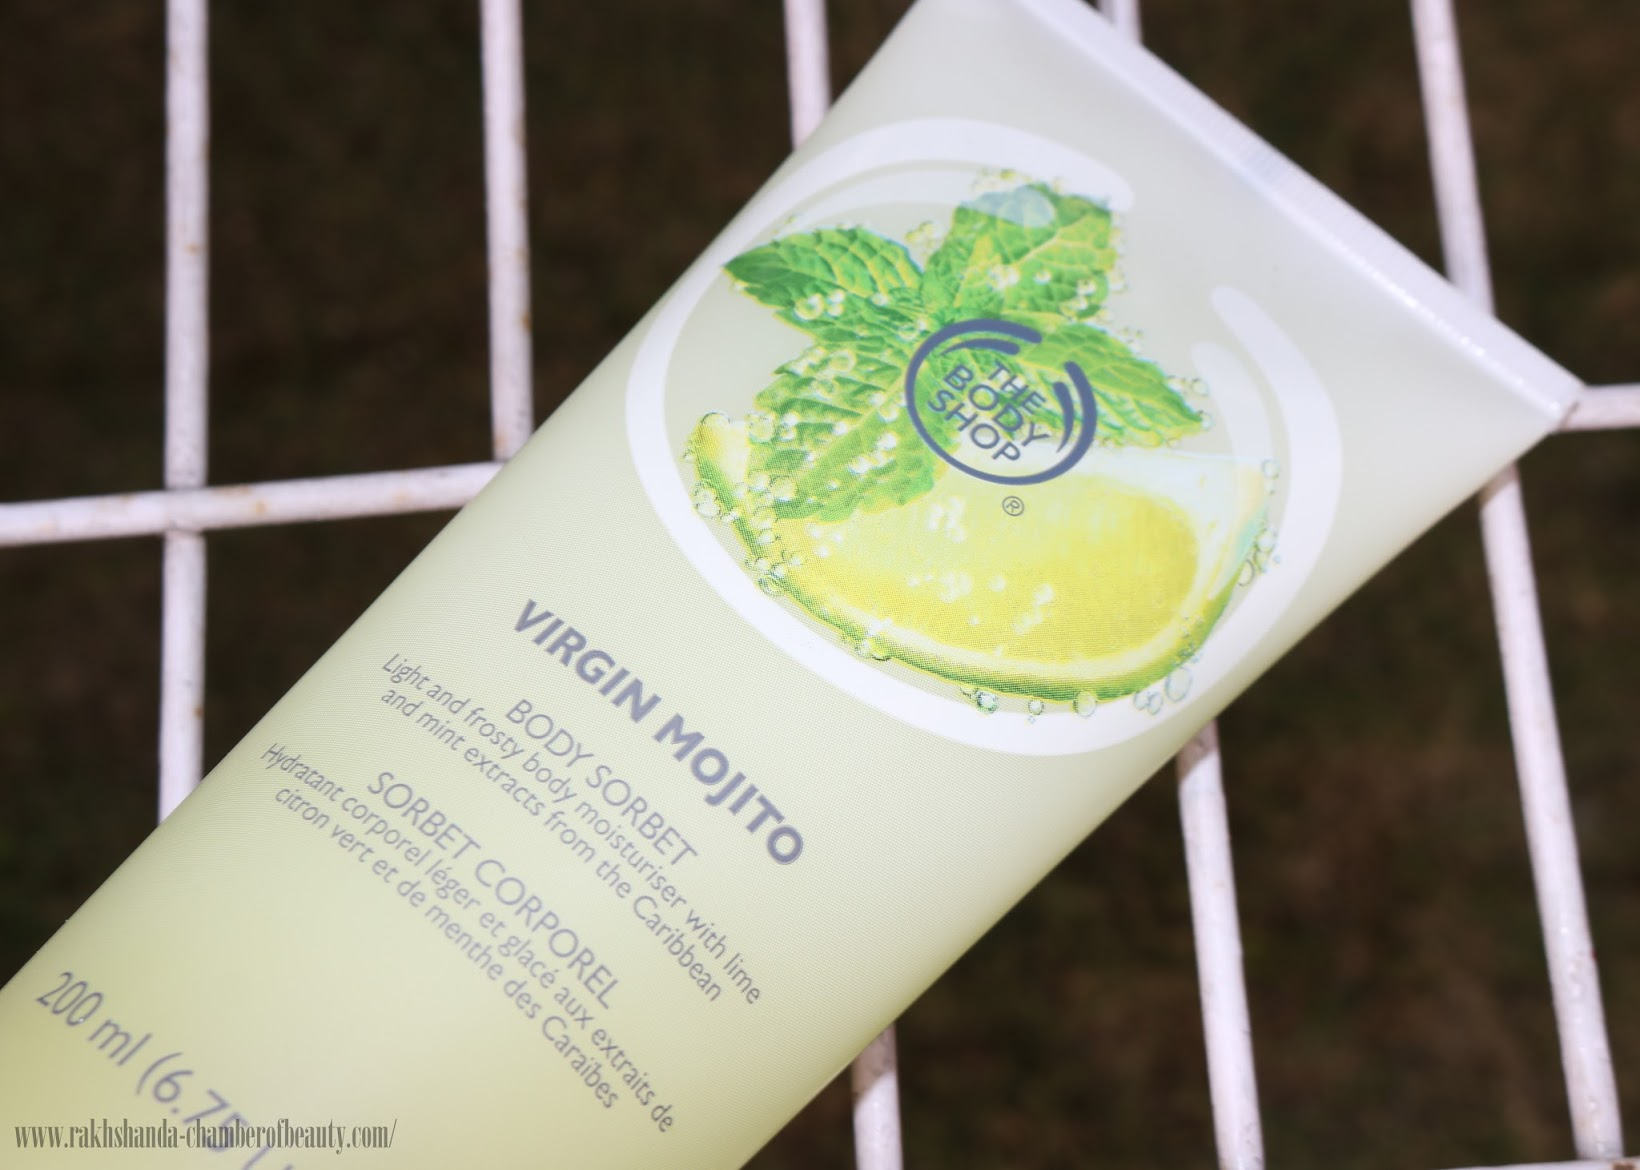 The Body Shop Virgin Mojito range in India,The Body Shop Virgin Mojito Body Sorbet-review, price in India, Indian beauty blogger, Chamber of Beauty